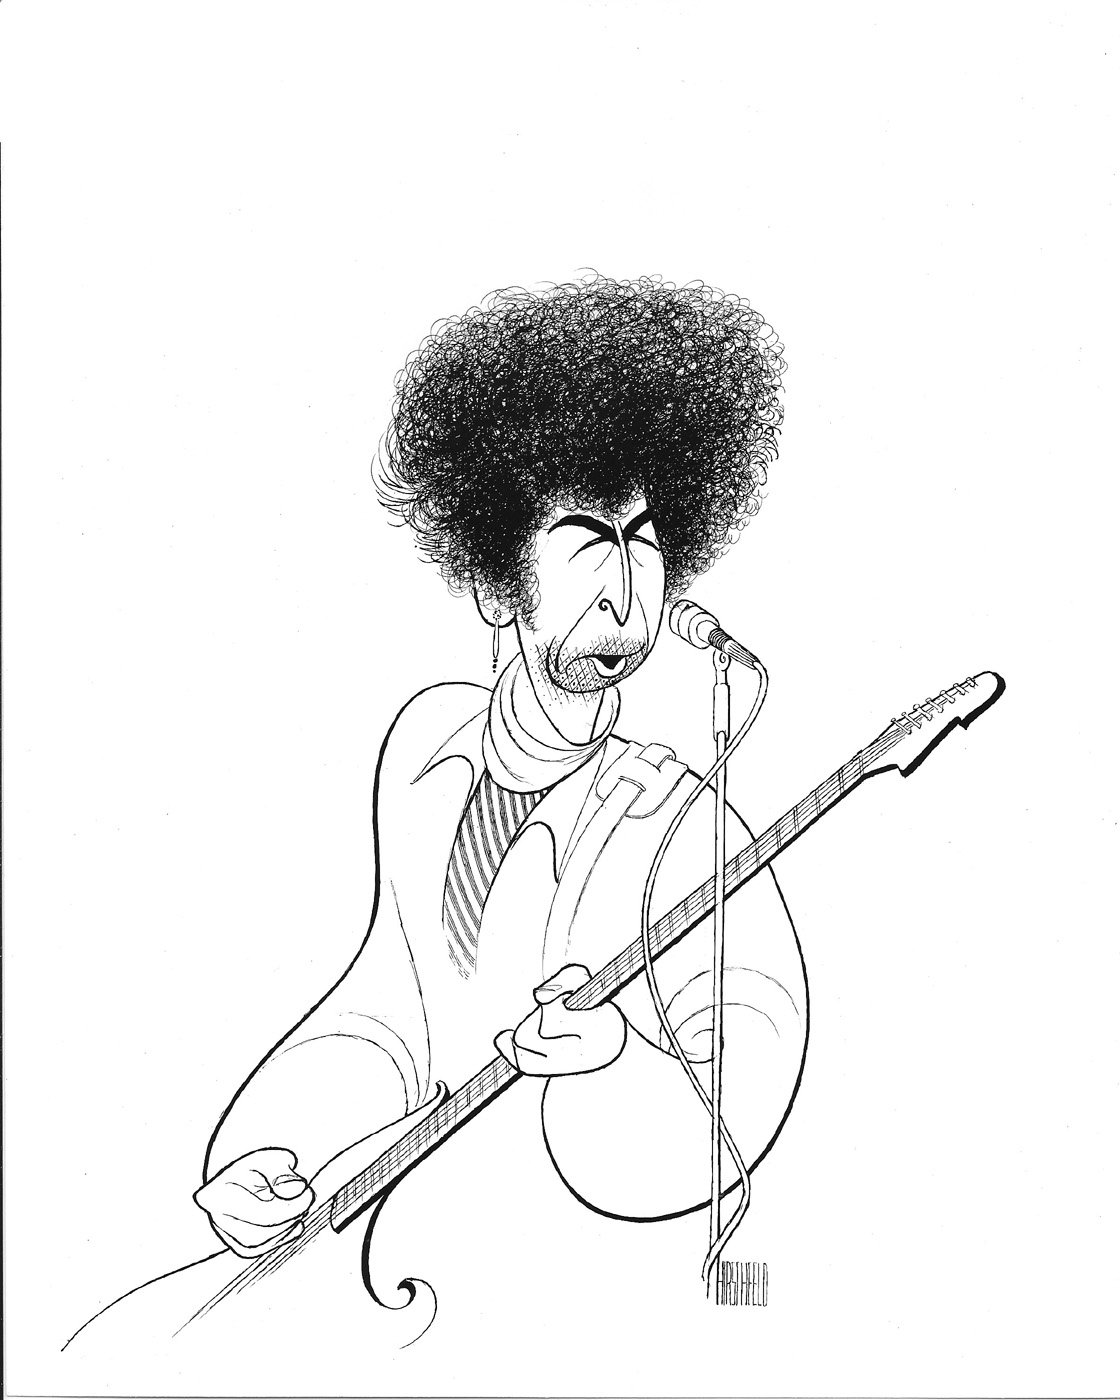 AL HIRSCHFELD'S Portrait of BOB DYLAN, Hand Signed by Al Hirschfeld, C of A, Ltd Ed AL HIRSCHFELD' S Portrait of BOB DYLAN THE MARGO FEIDEN GALLERIES LTD. New York